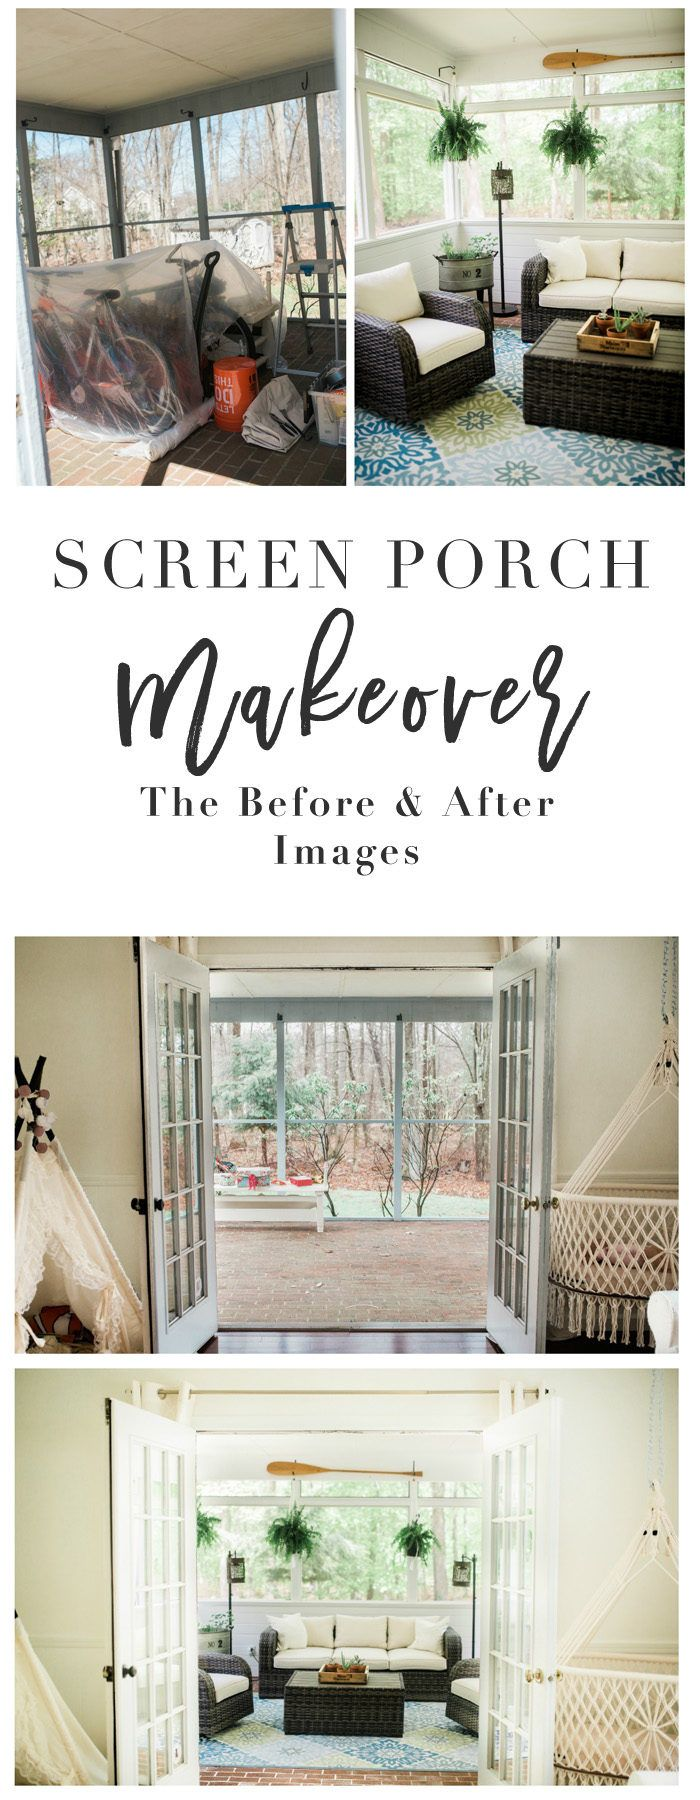 58 best Sunroom images on Pinterest | Screened porches, Sunrooms and ...